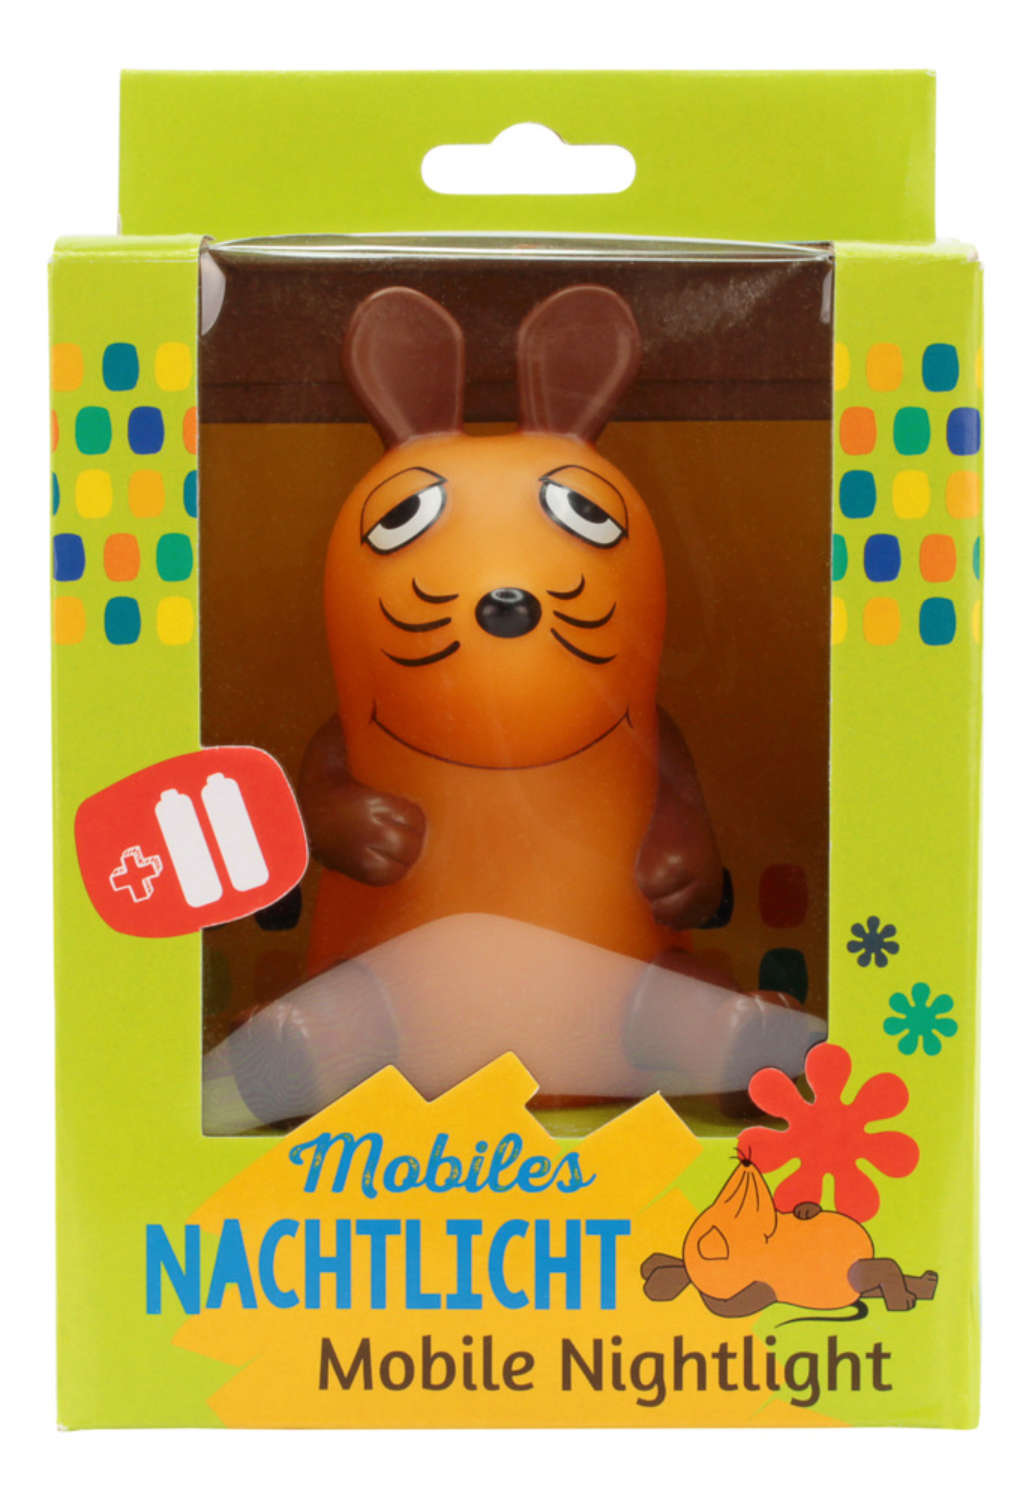 Mobile nightlight Mouse